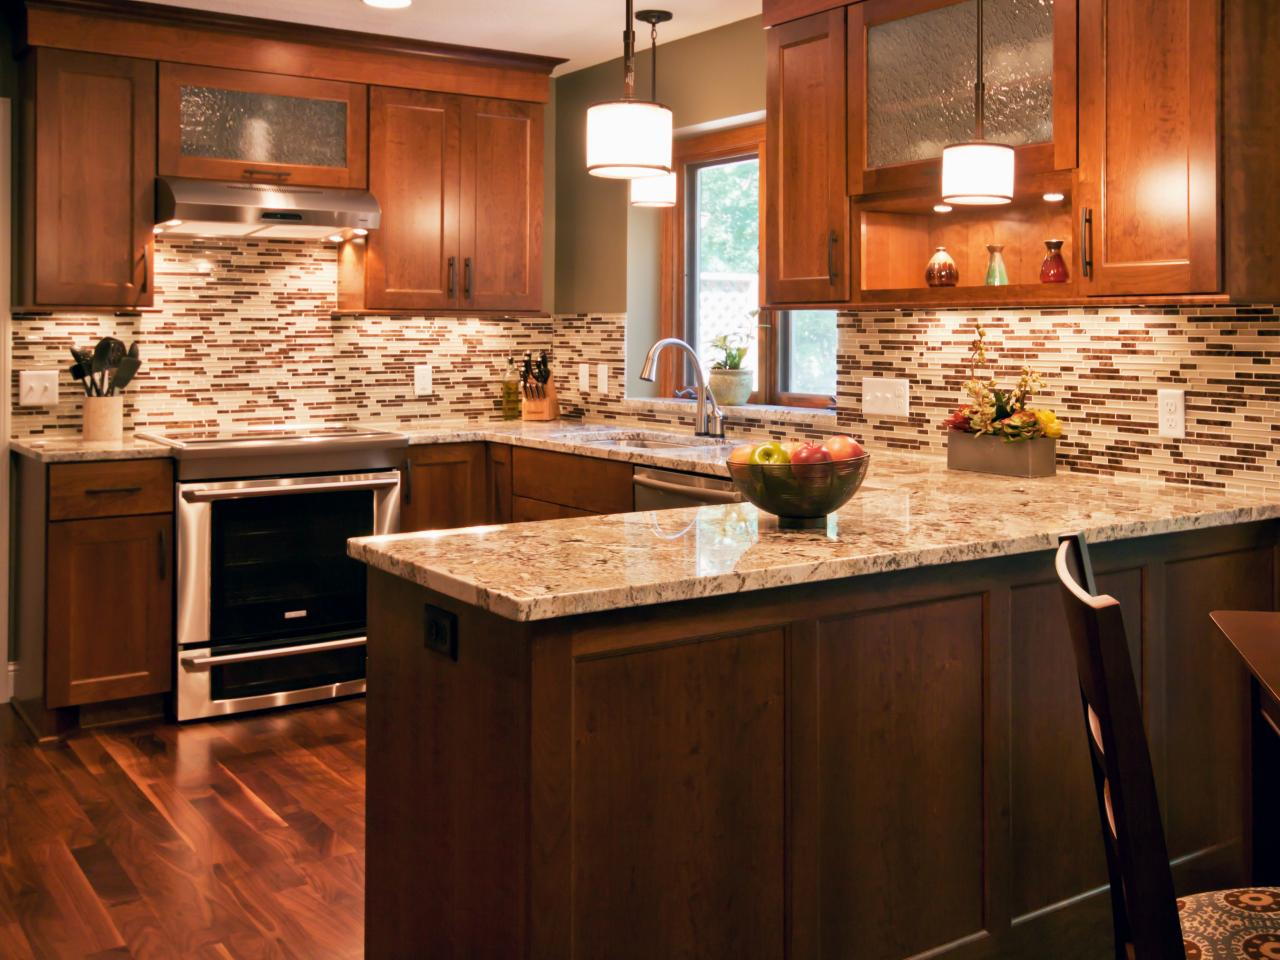 Beautiful Mosaic Tile Kitchen Backsplash.